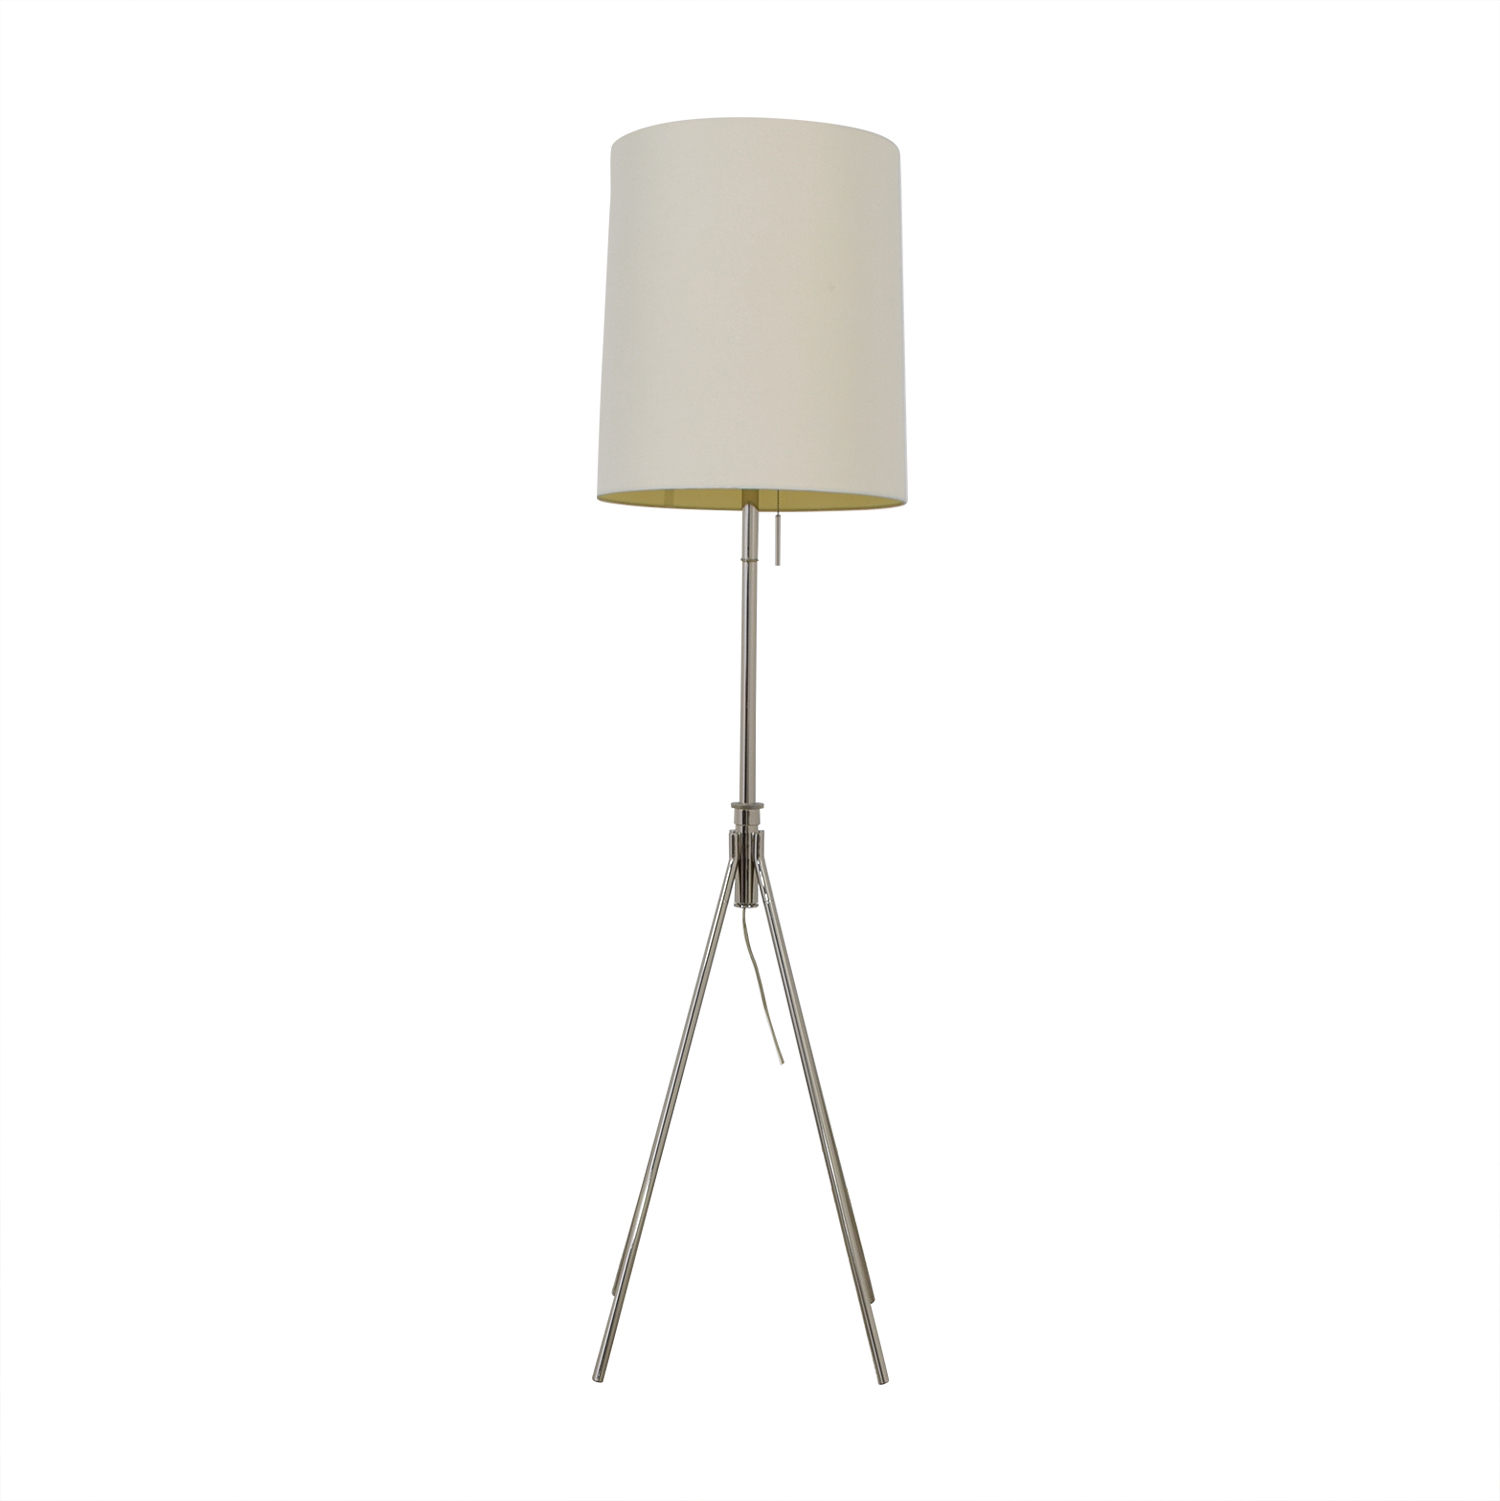 buy West Elm Adjustable Metal Floor Lamp Polished Nickel West Elm Decor